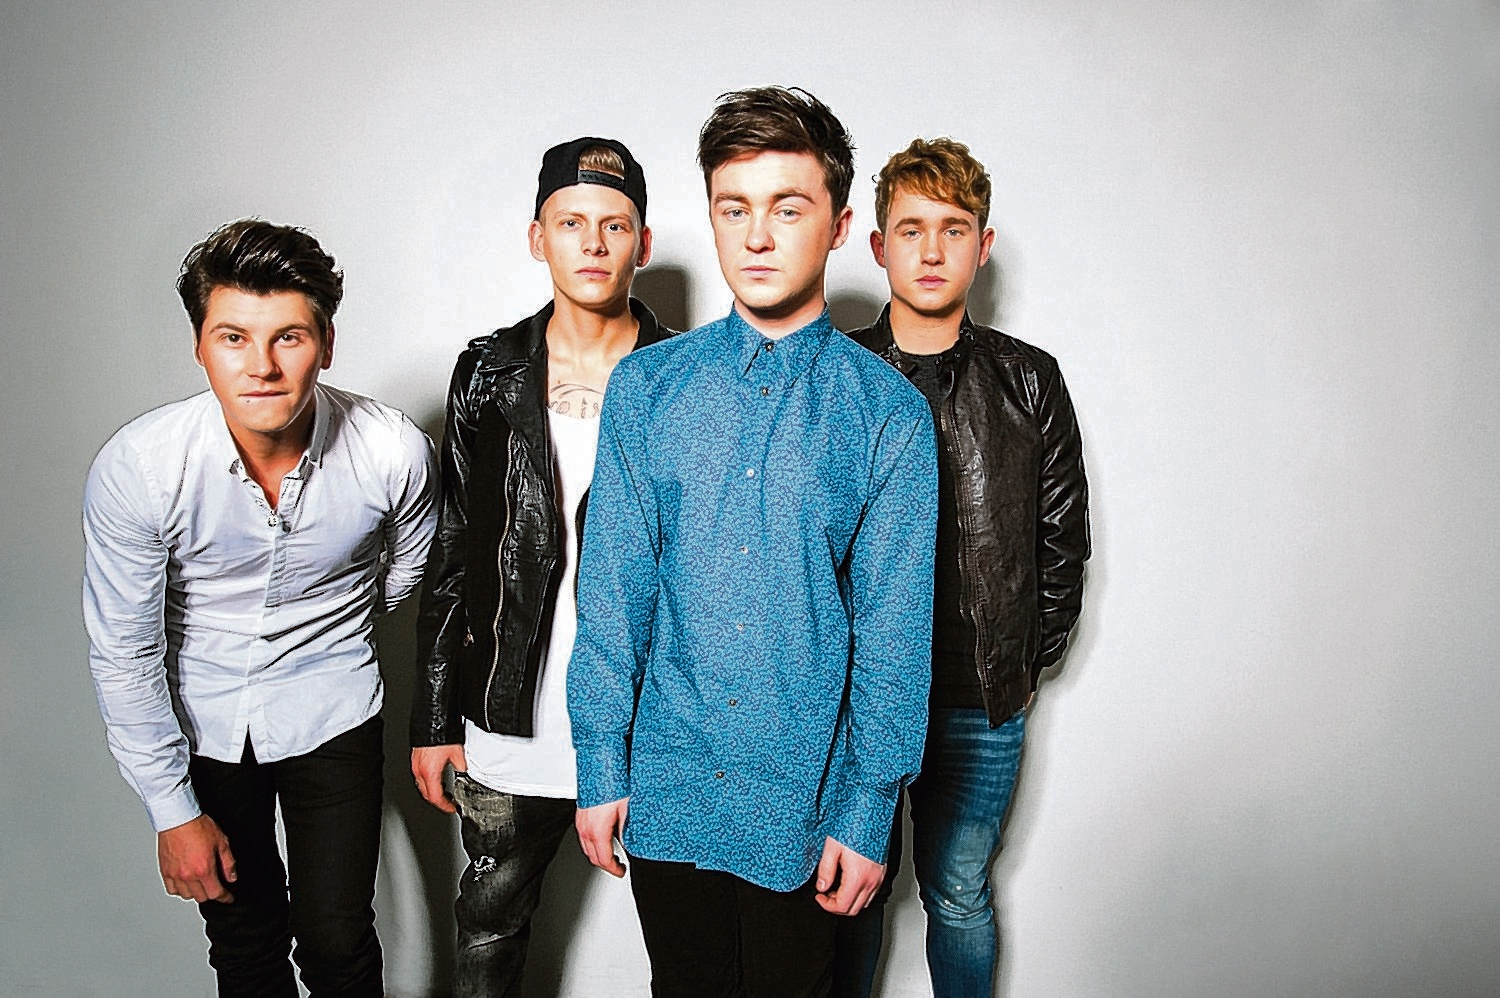 Warrington Guardian: On the up – Rixton look like they're heading for the big time